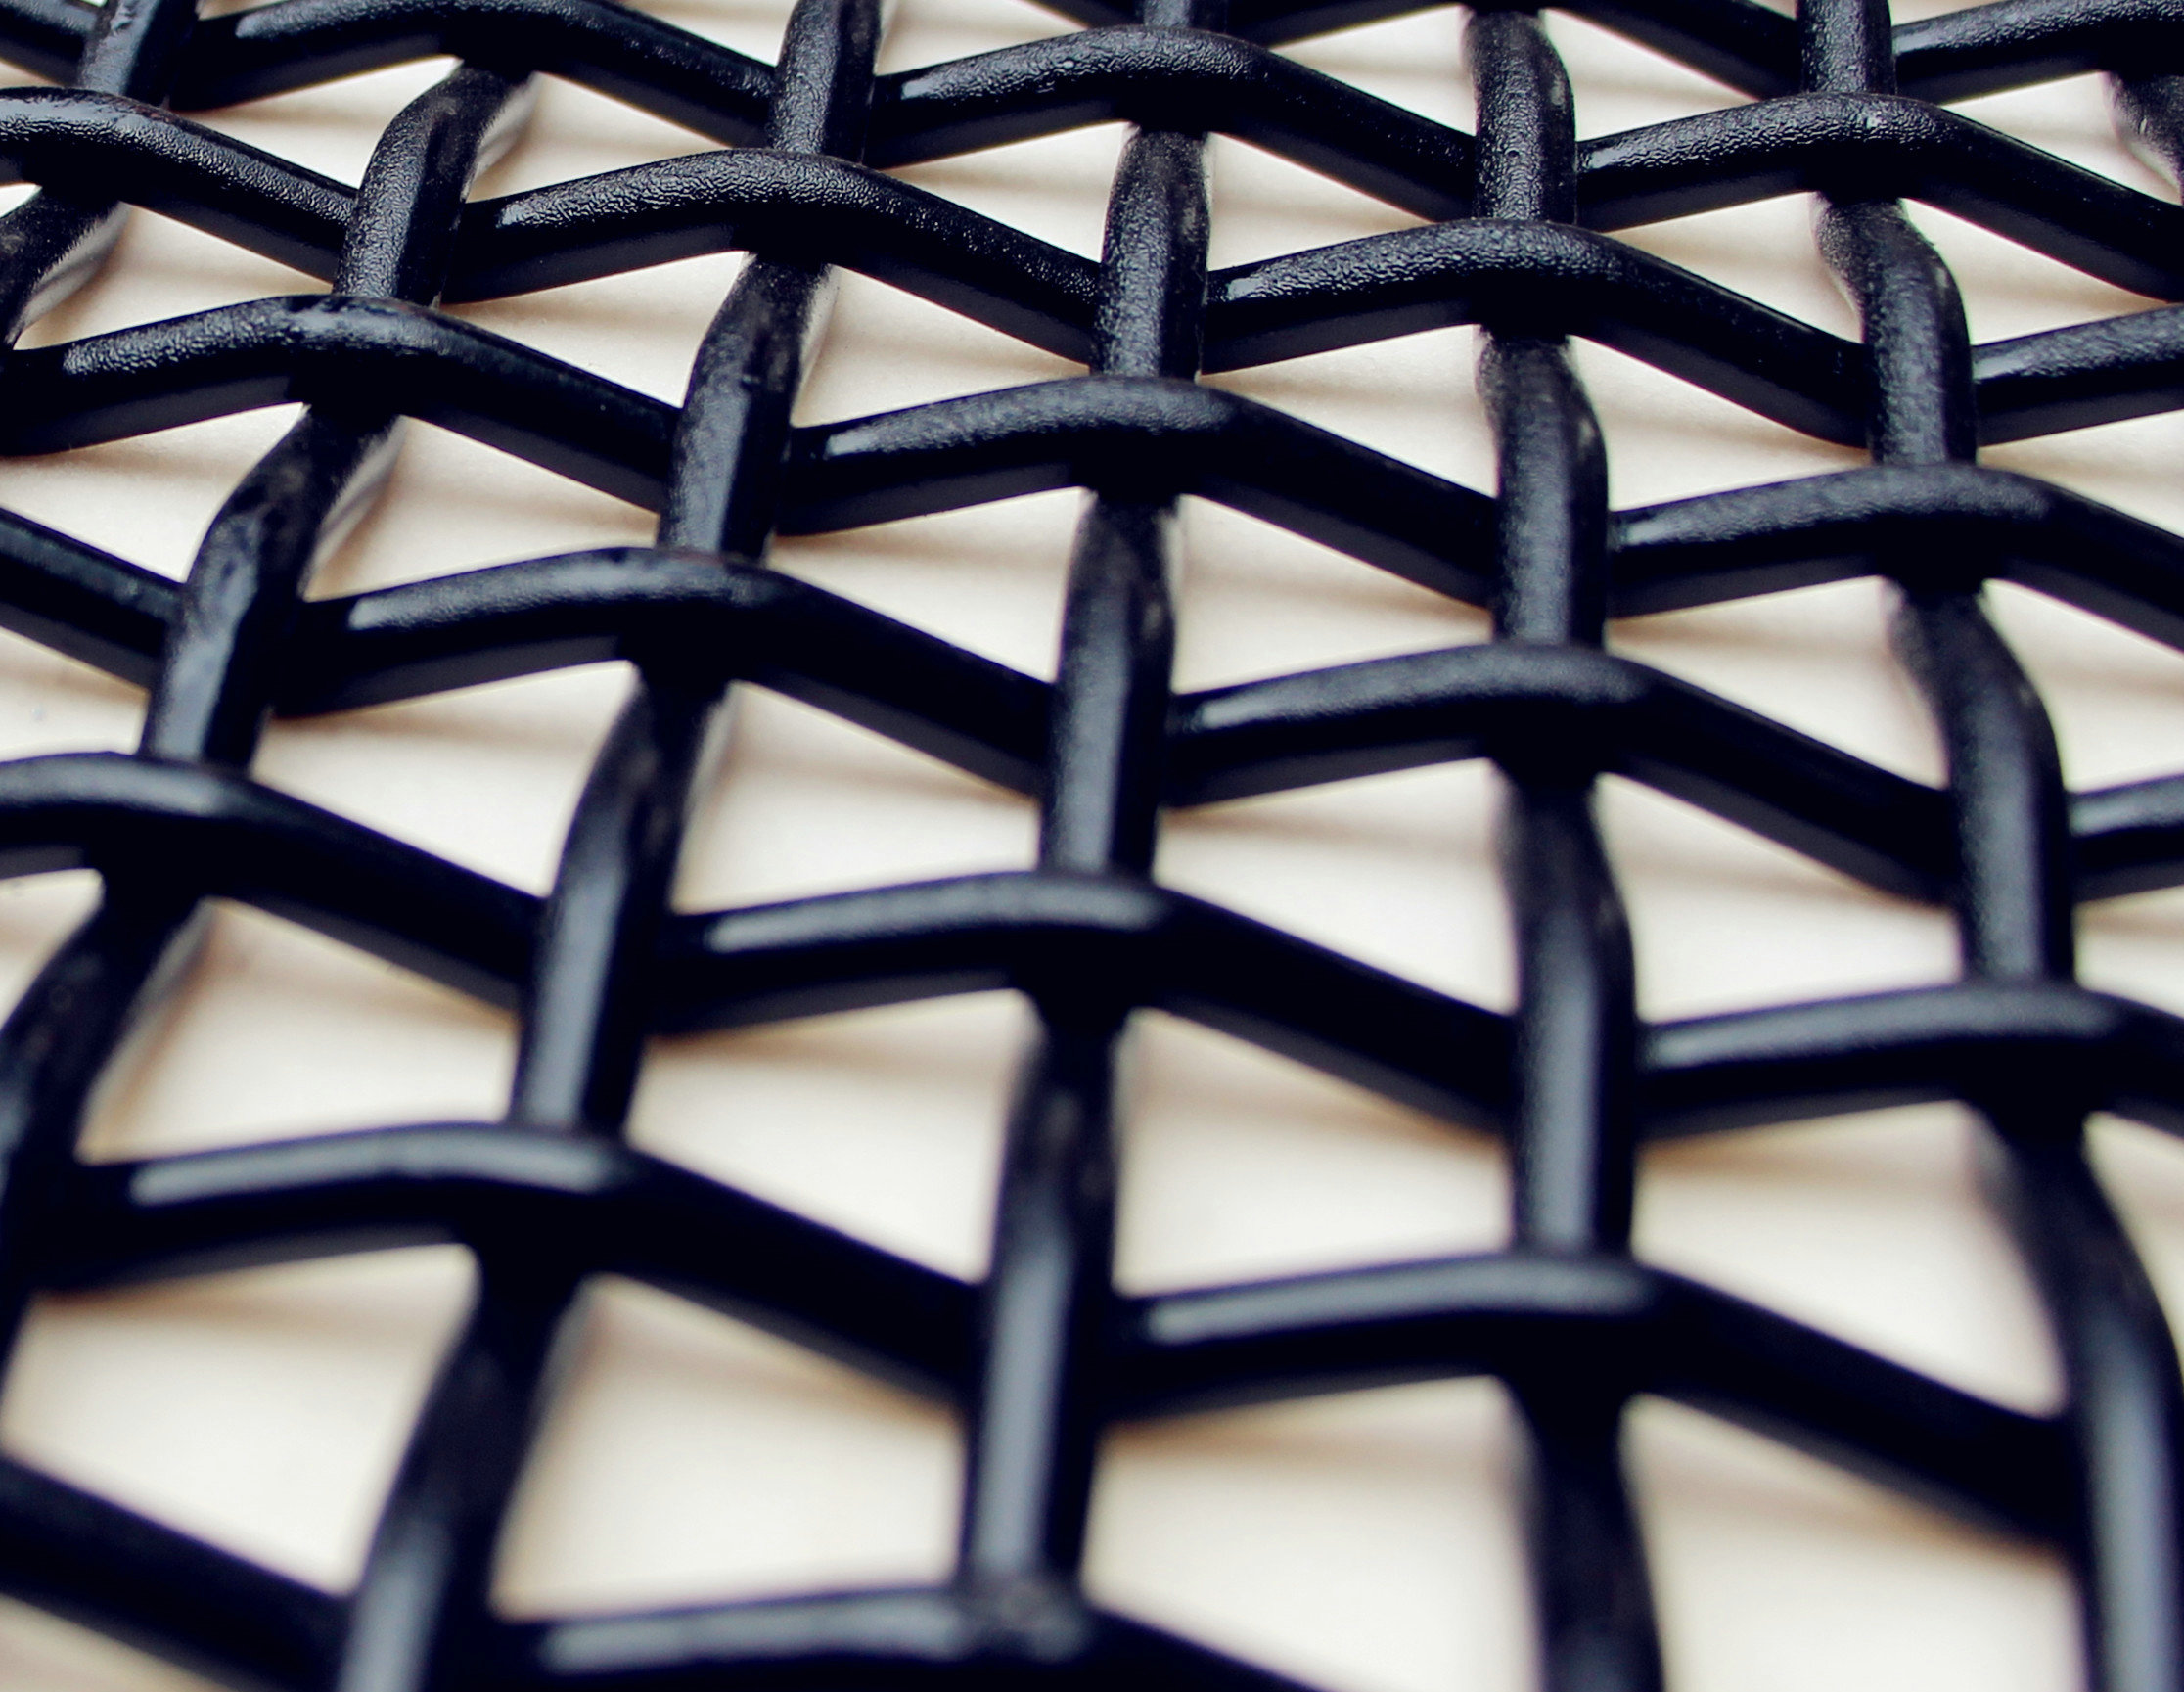 Painted woven wire mesh